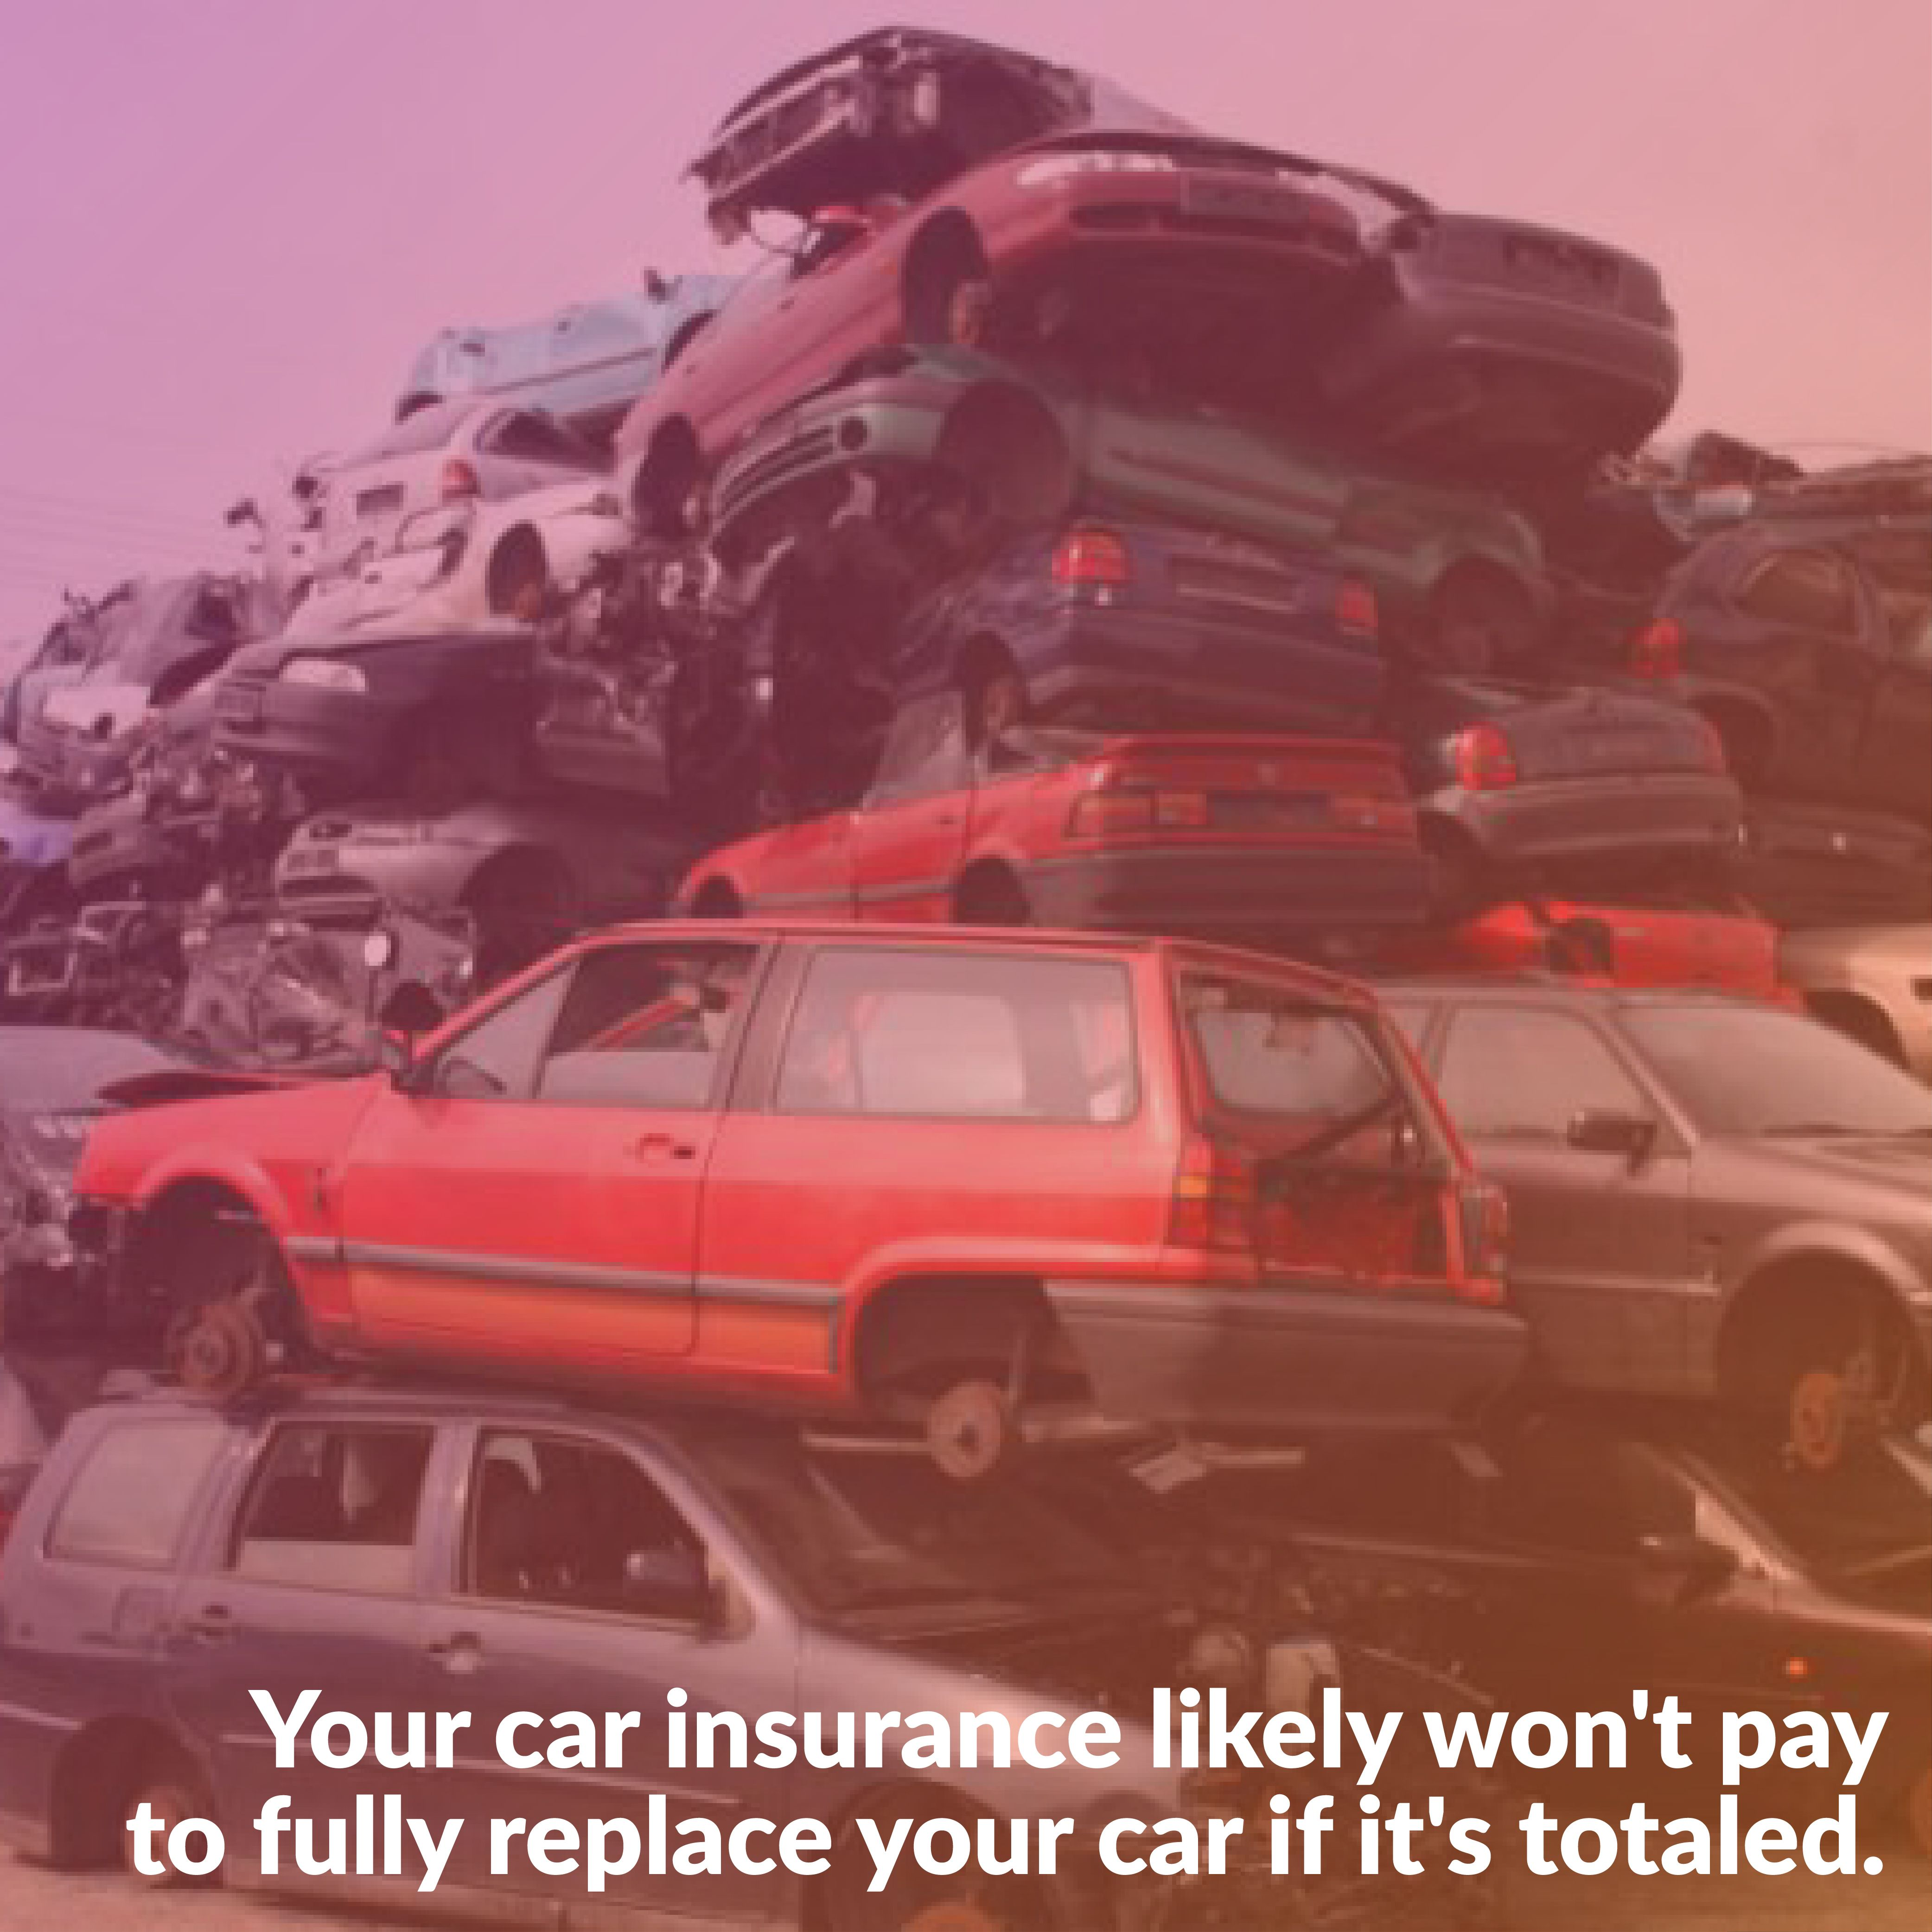 Didyouknow unless you have gapinsurance your insurance